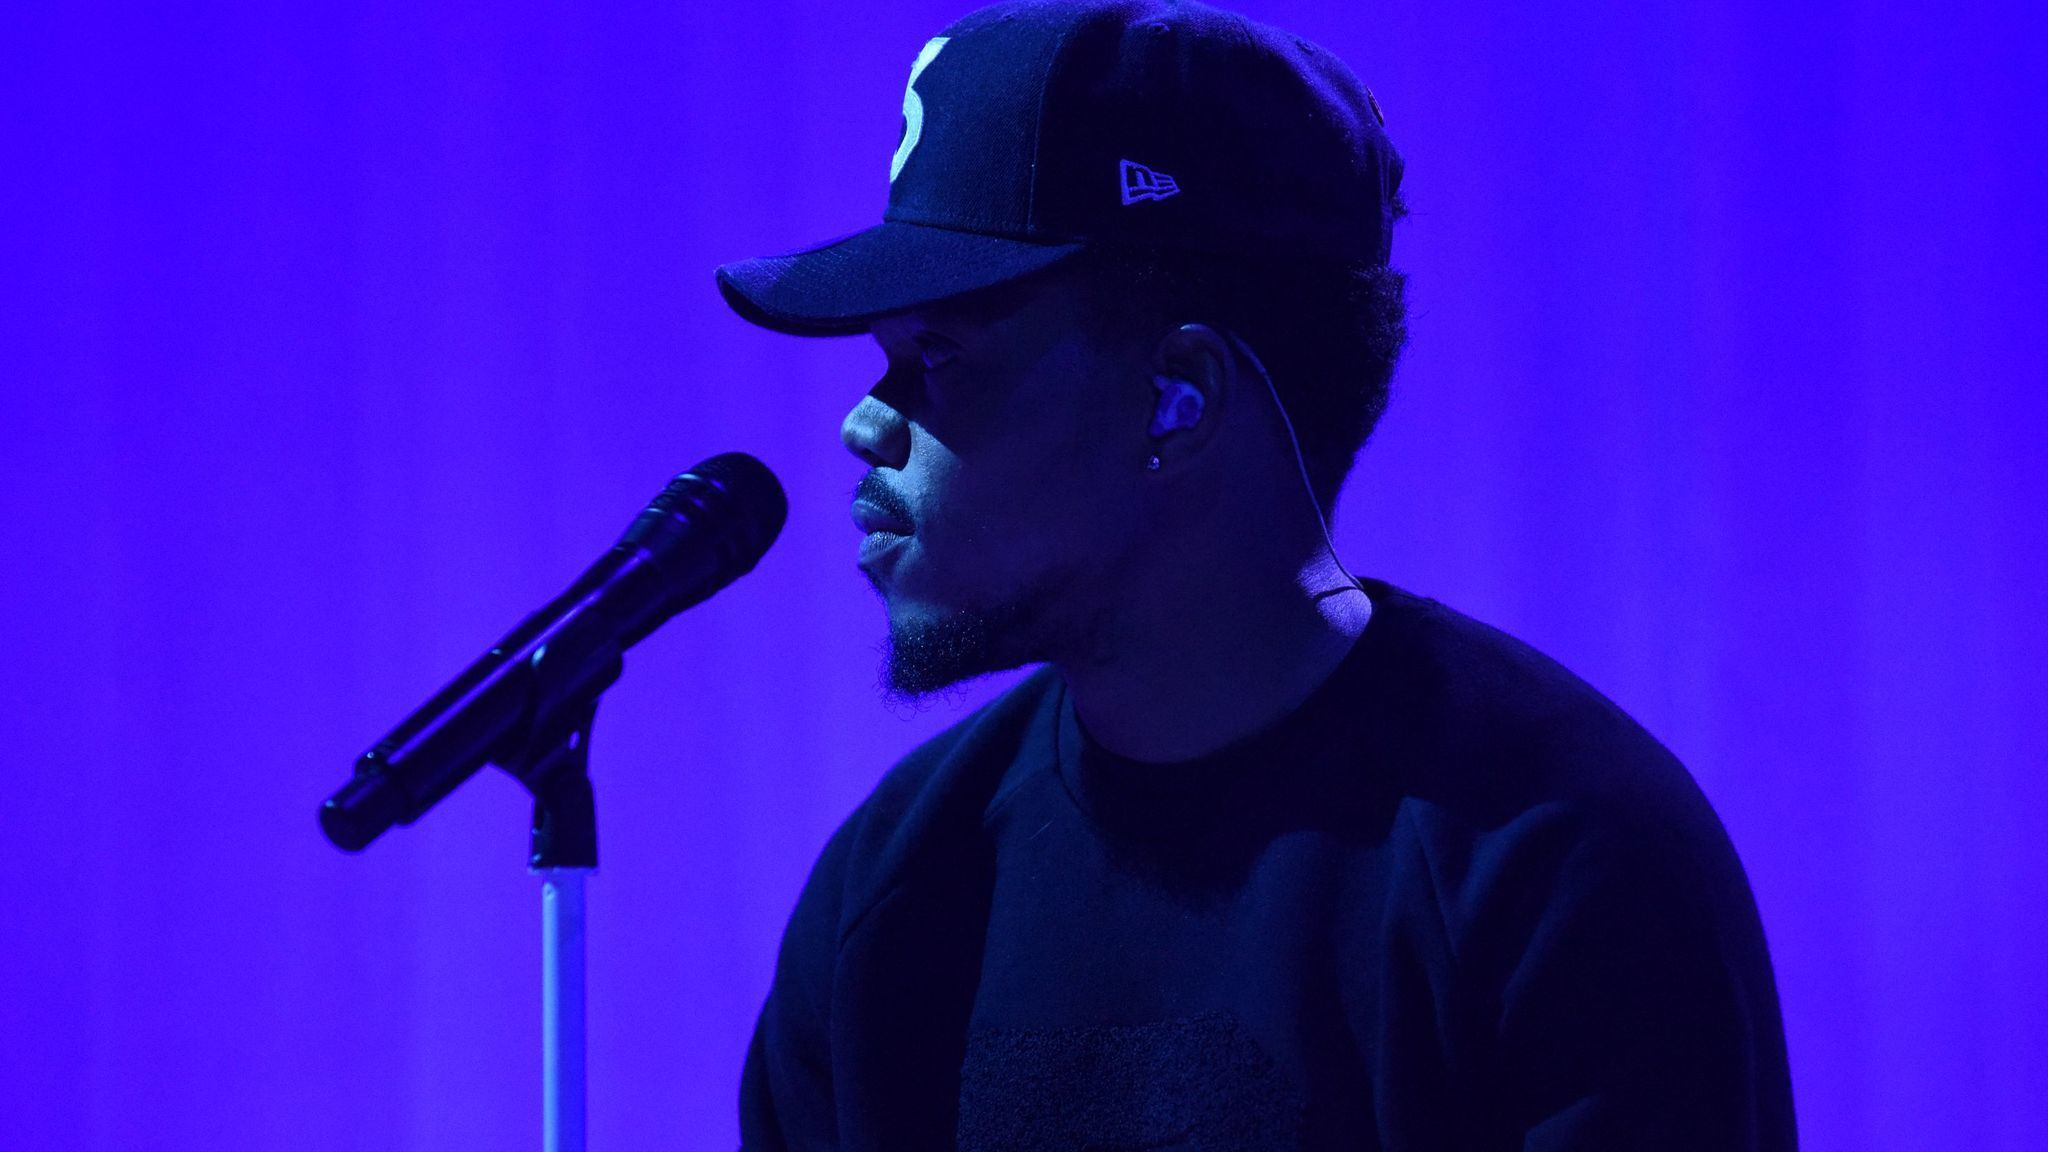 Chance the Rapper Performs A New Song on The Late Show